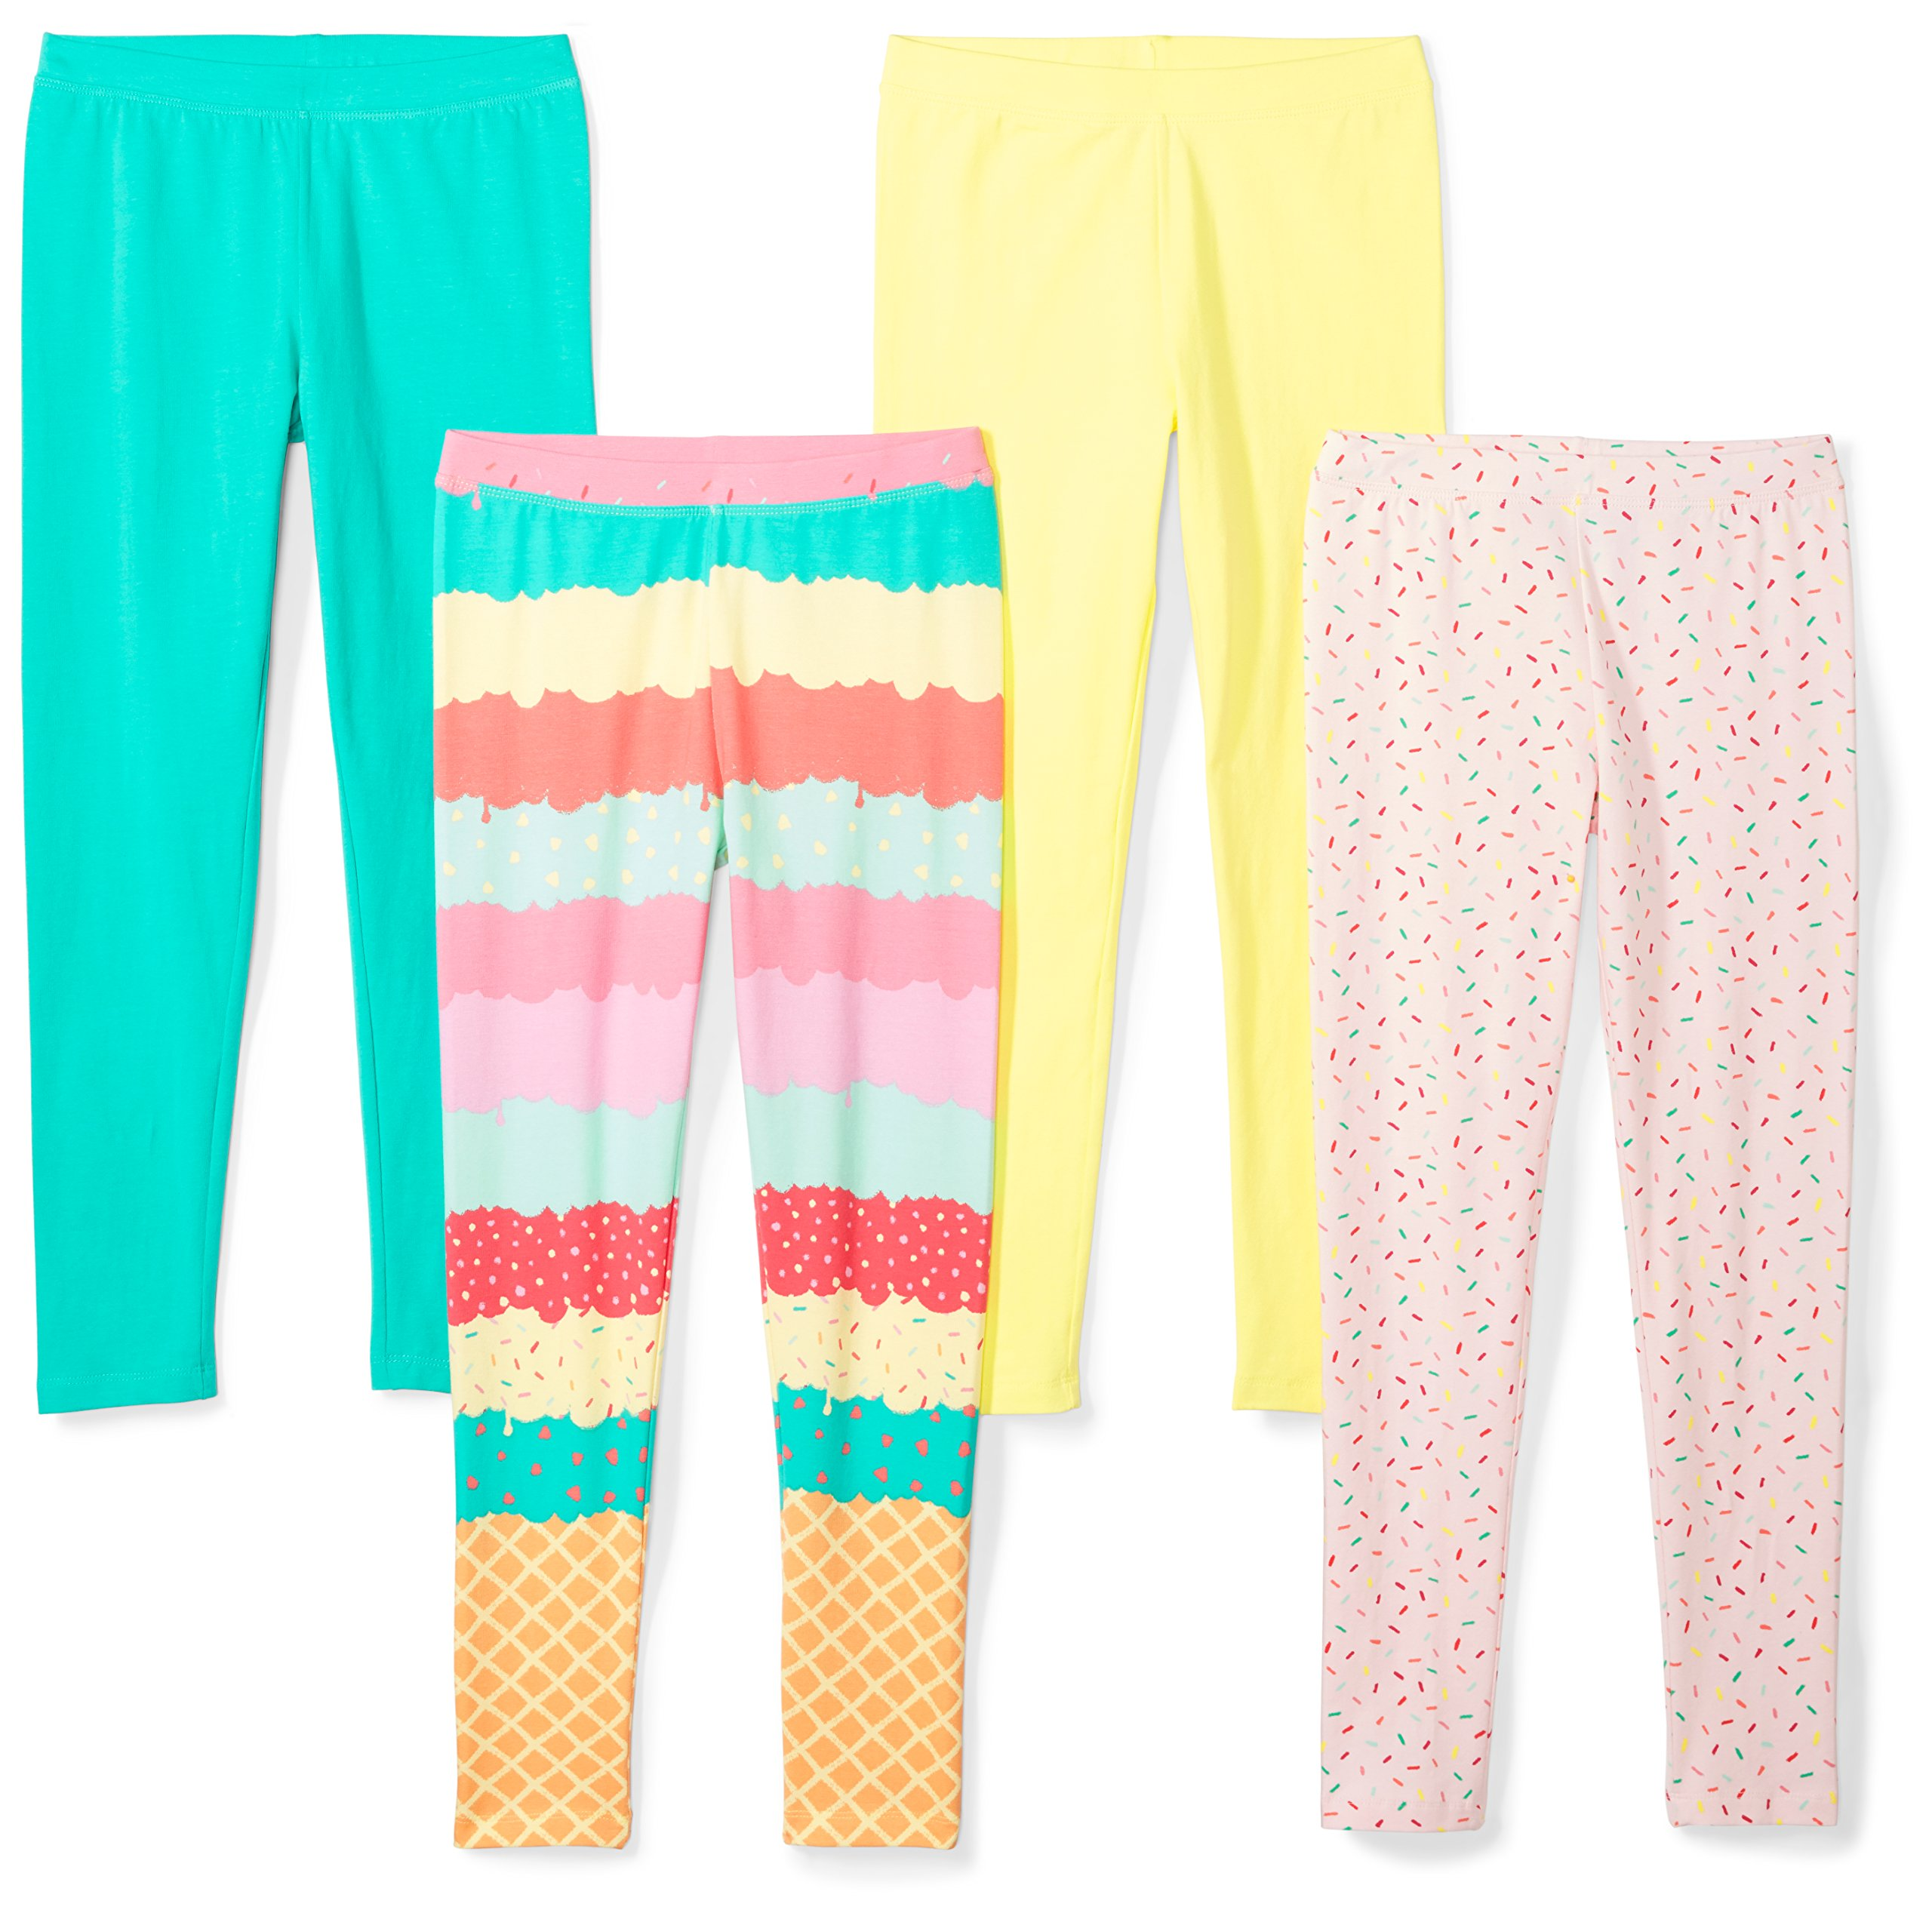 Spotted Zebra Girls' Little 4-Pack Leggings, Sweets, Small (6-7) by Spotted Zebra